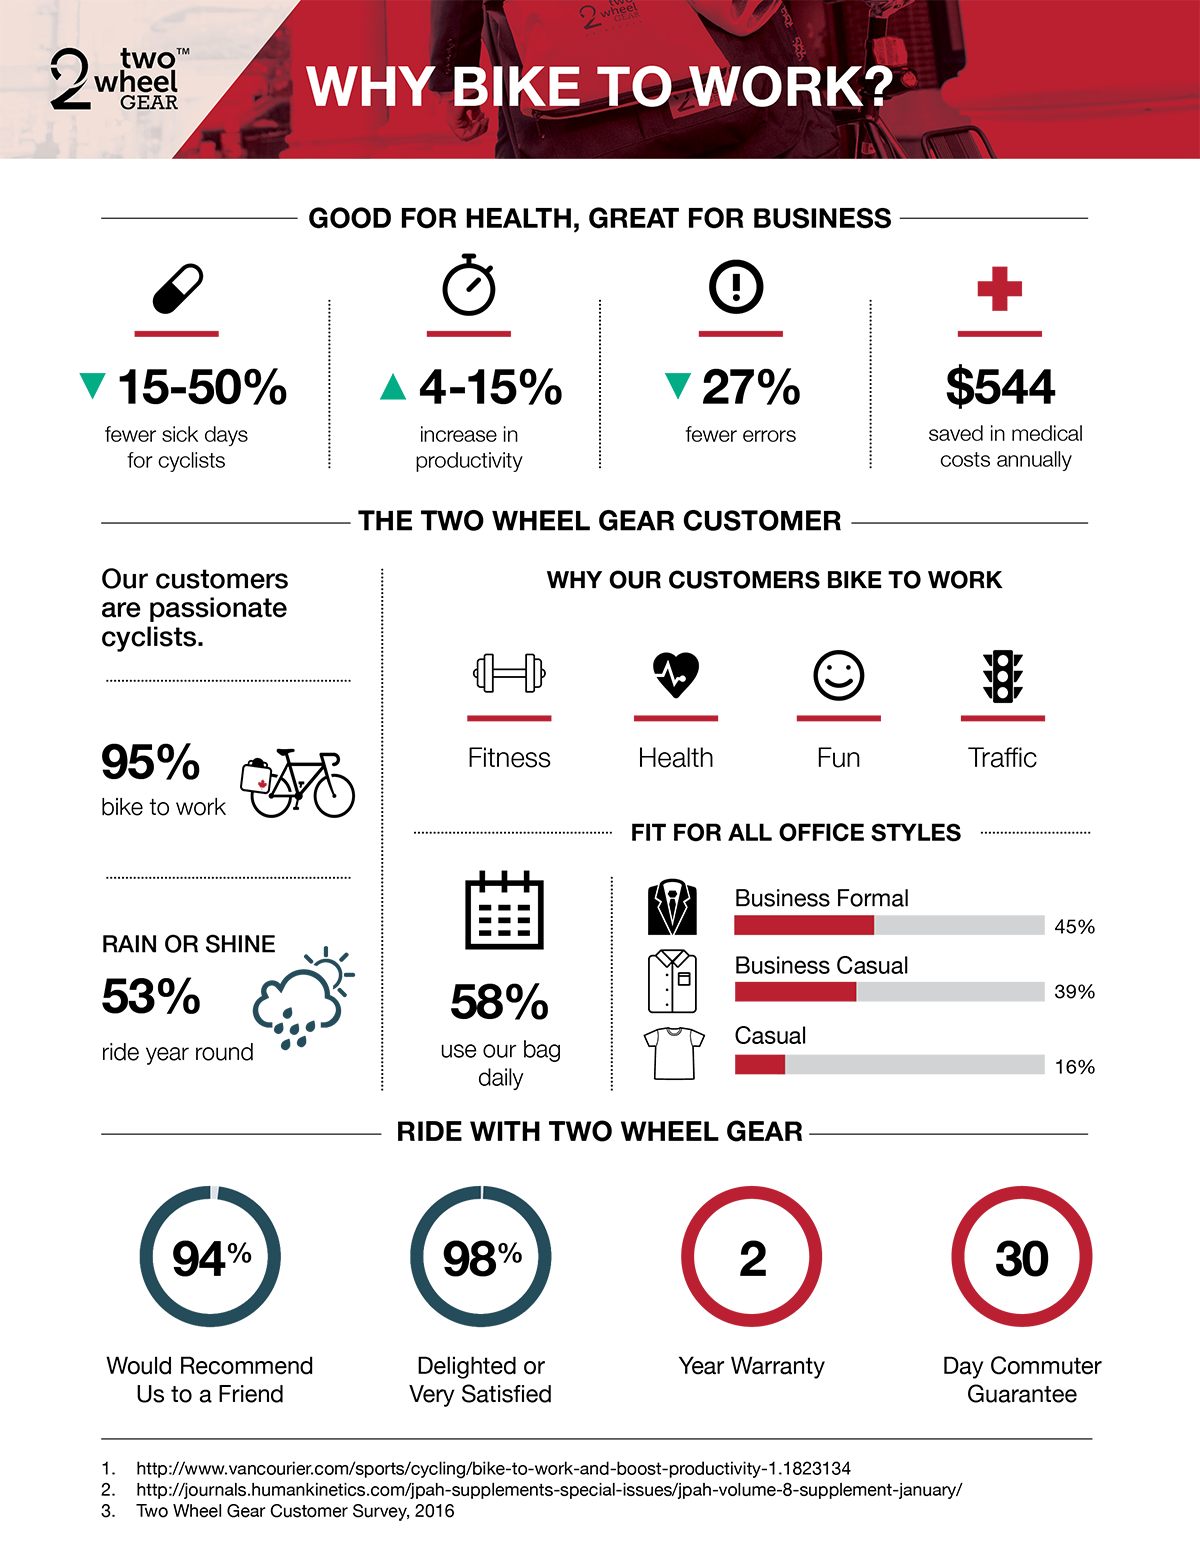 Two Wheel Gear Why Bike to Work Infographic